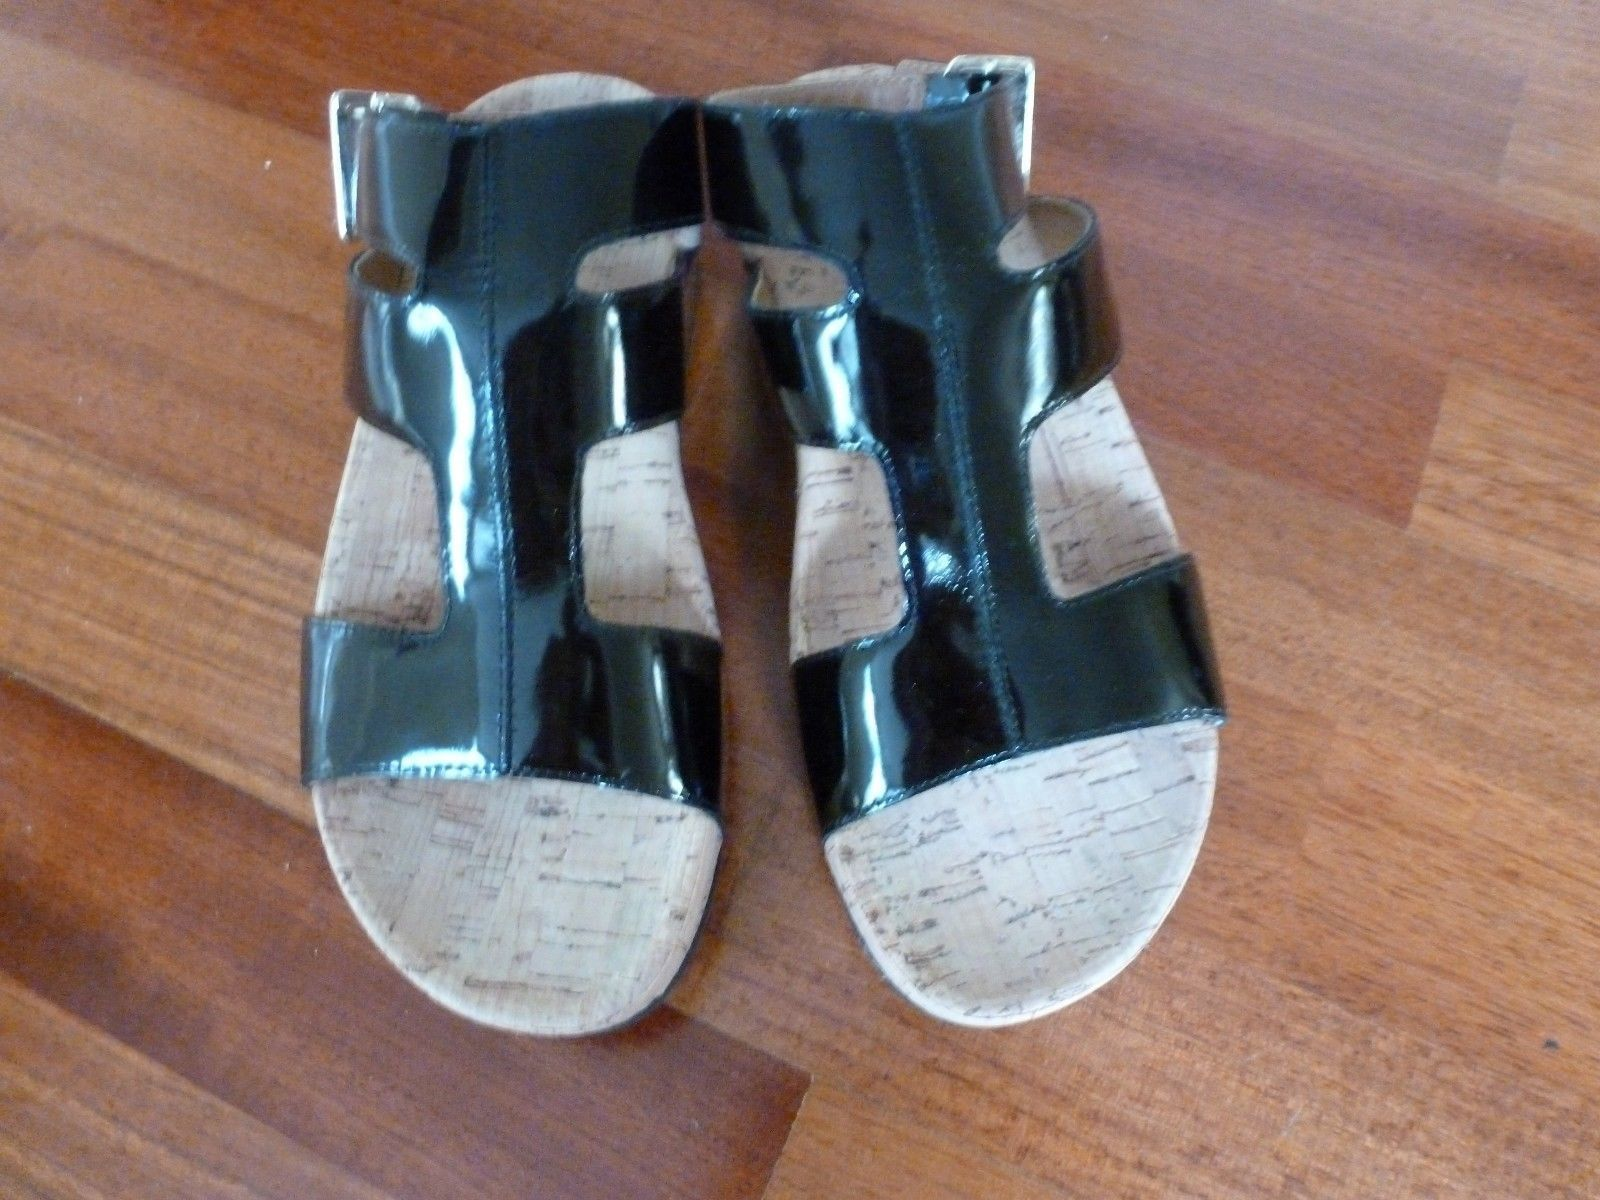 FitFlop The Skinny Cork Leather Womens Flip Flop Causal, 6 US Shoe Size (Women's - $117.00